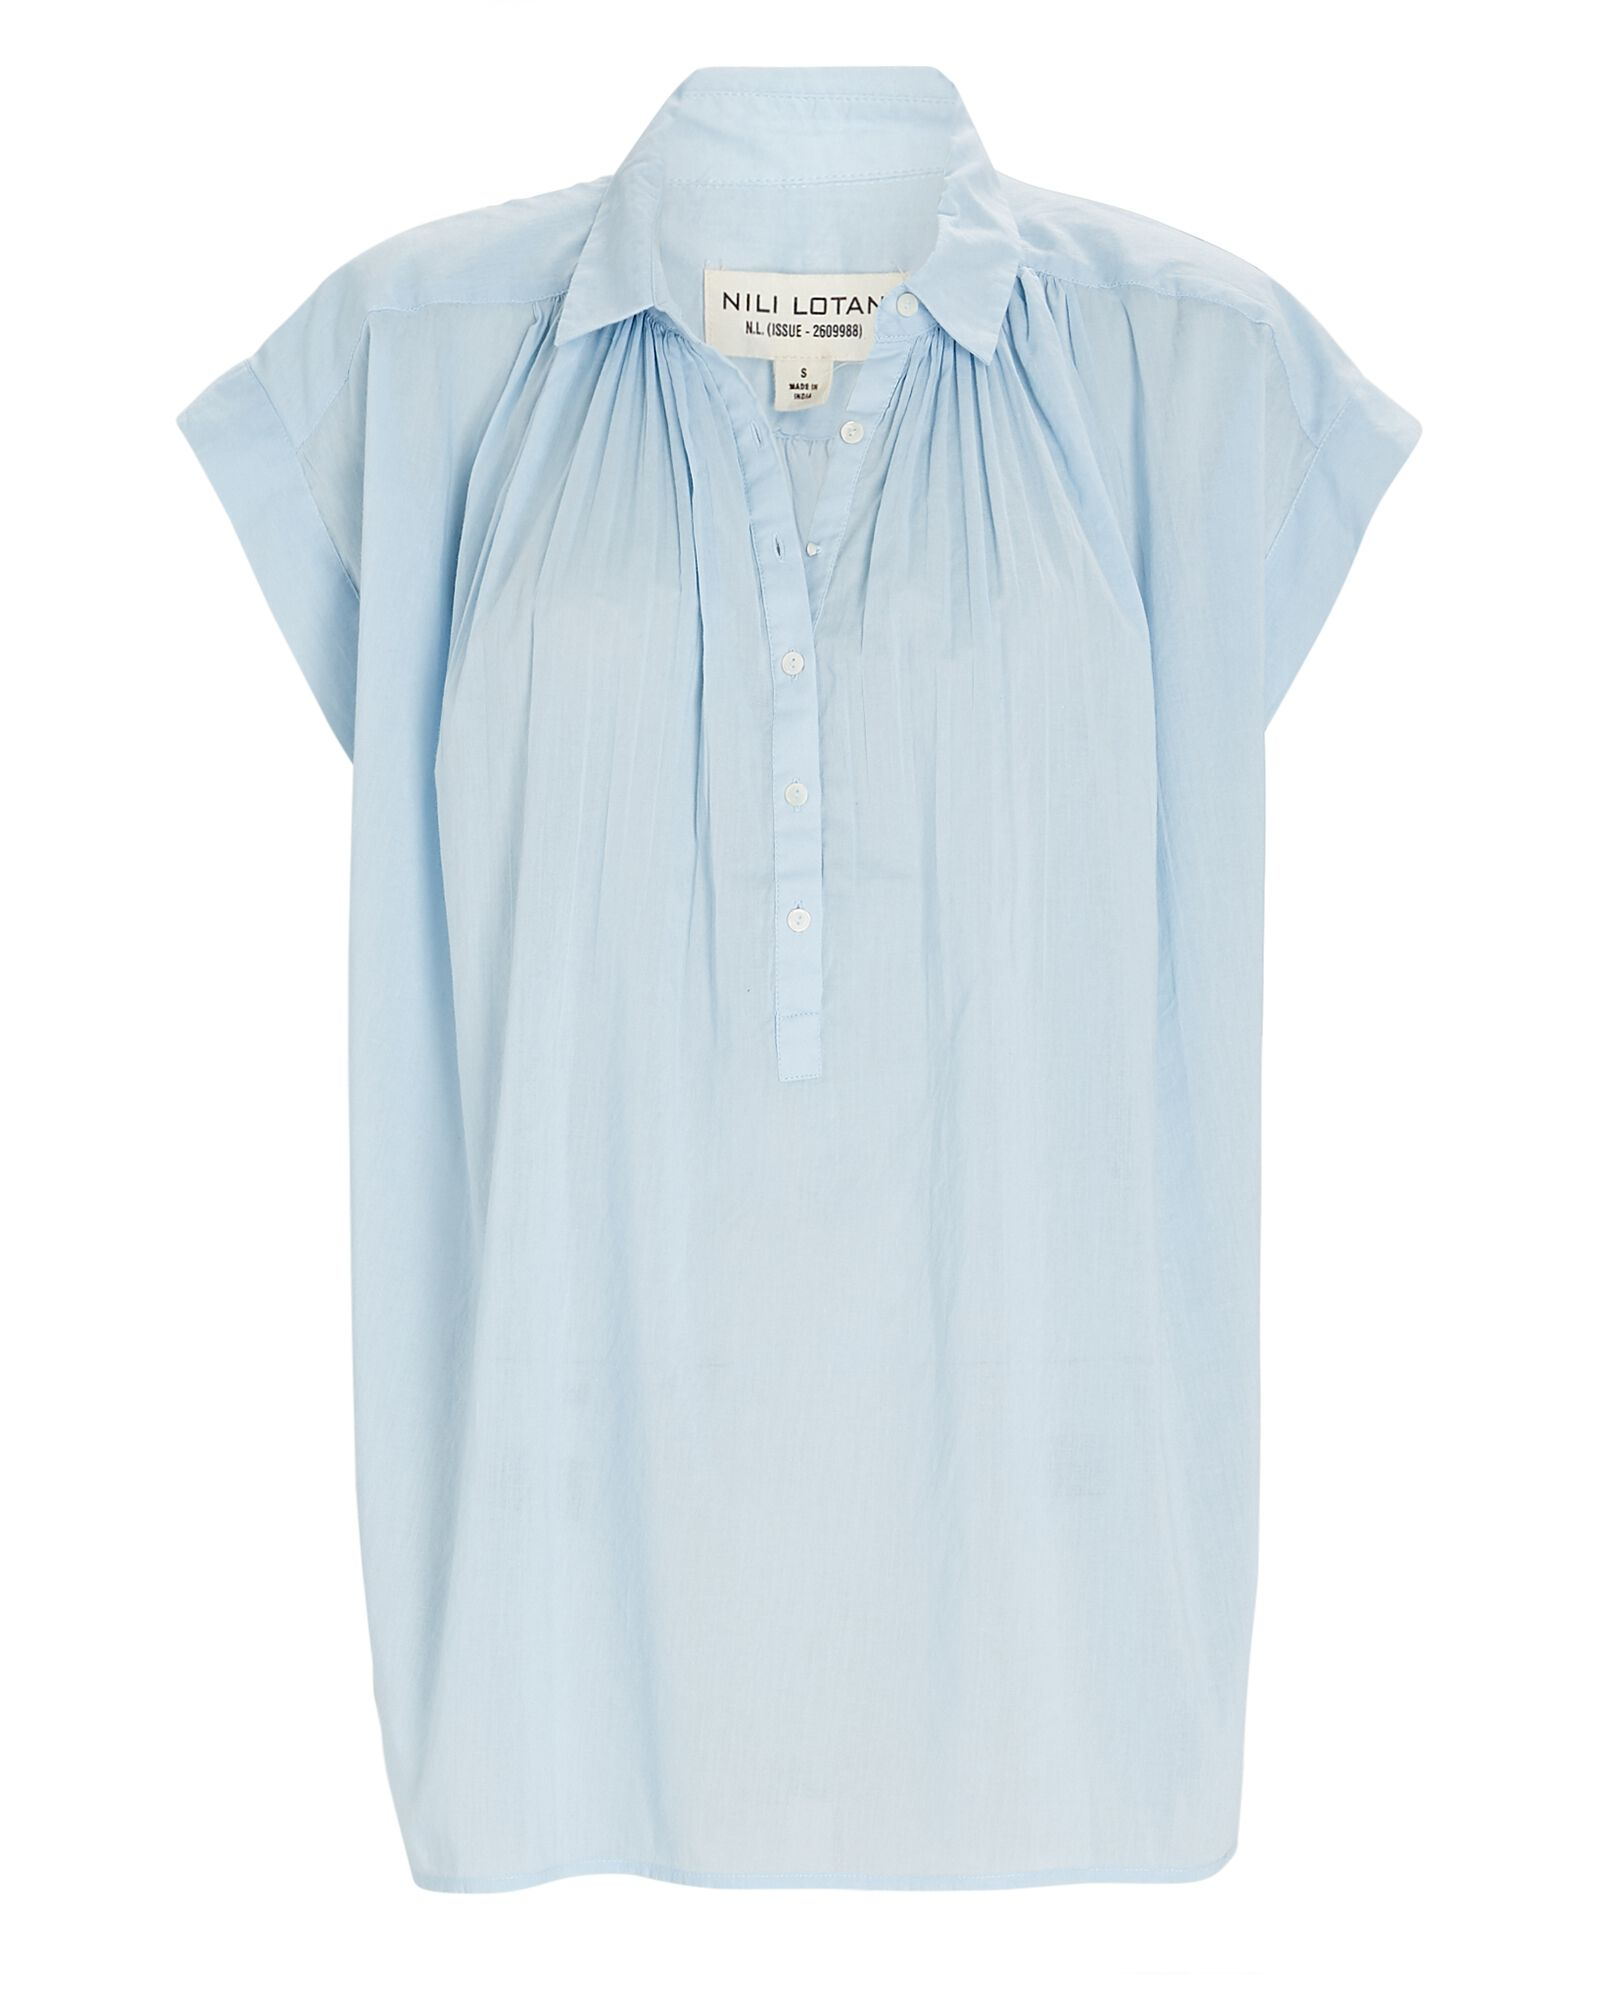 Normandy Cotton Voile Blouse, LIGHT BLUE, hi-res